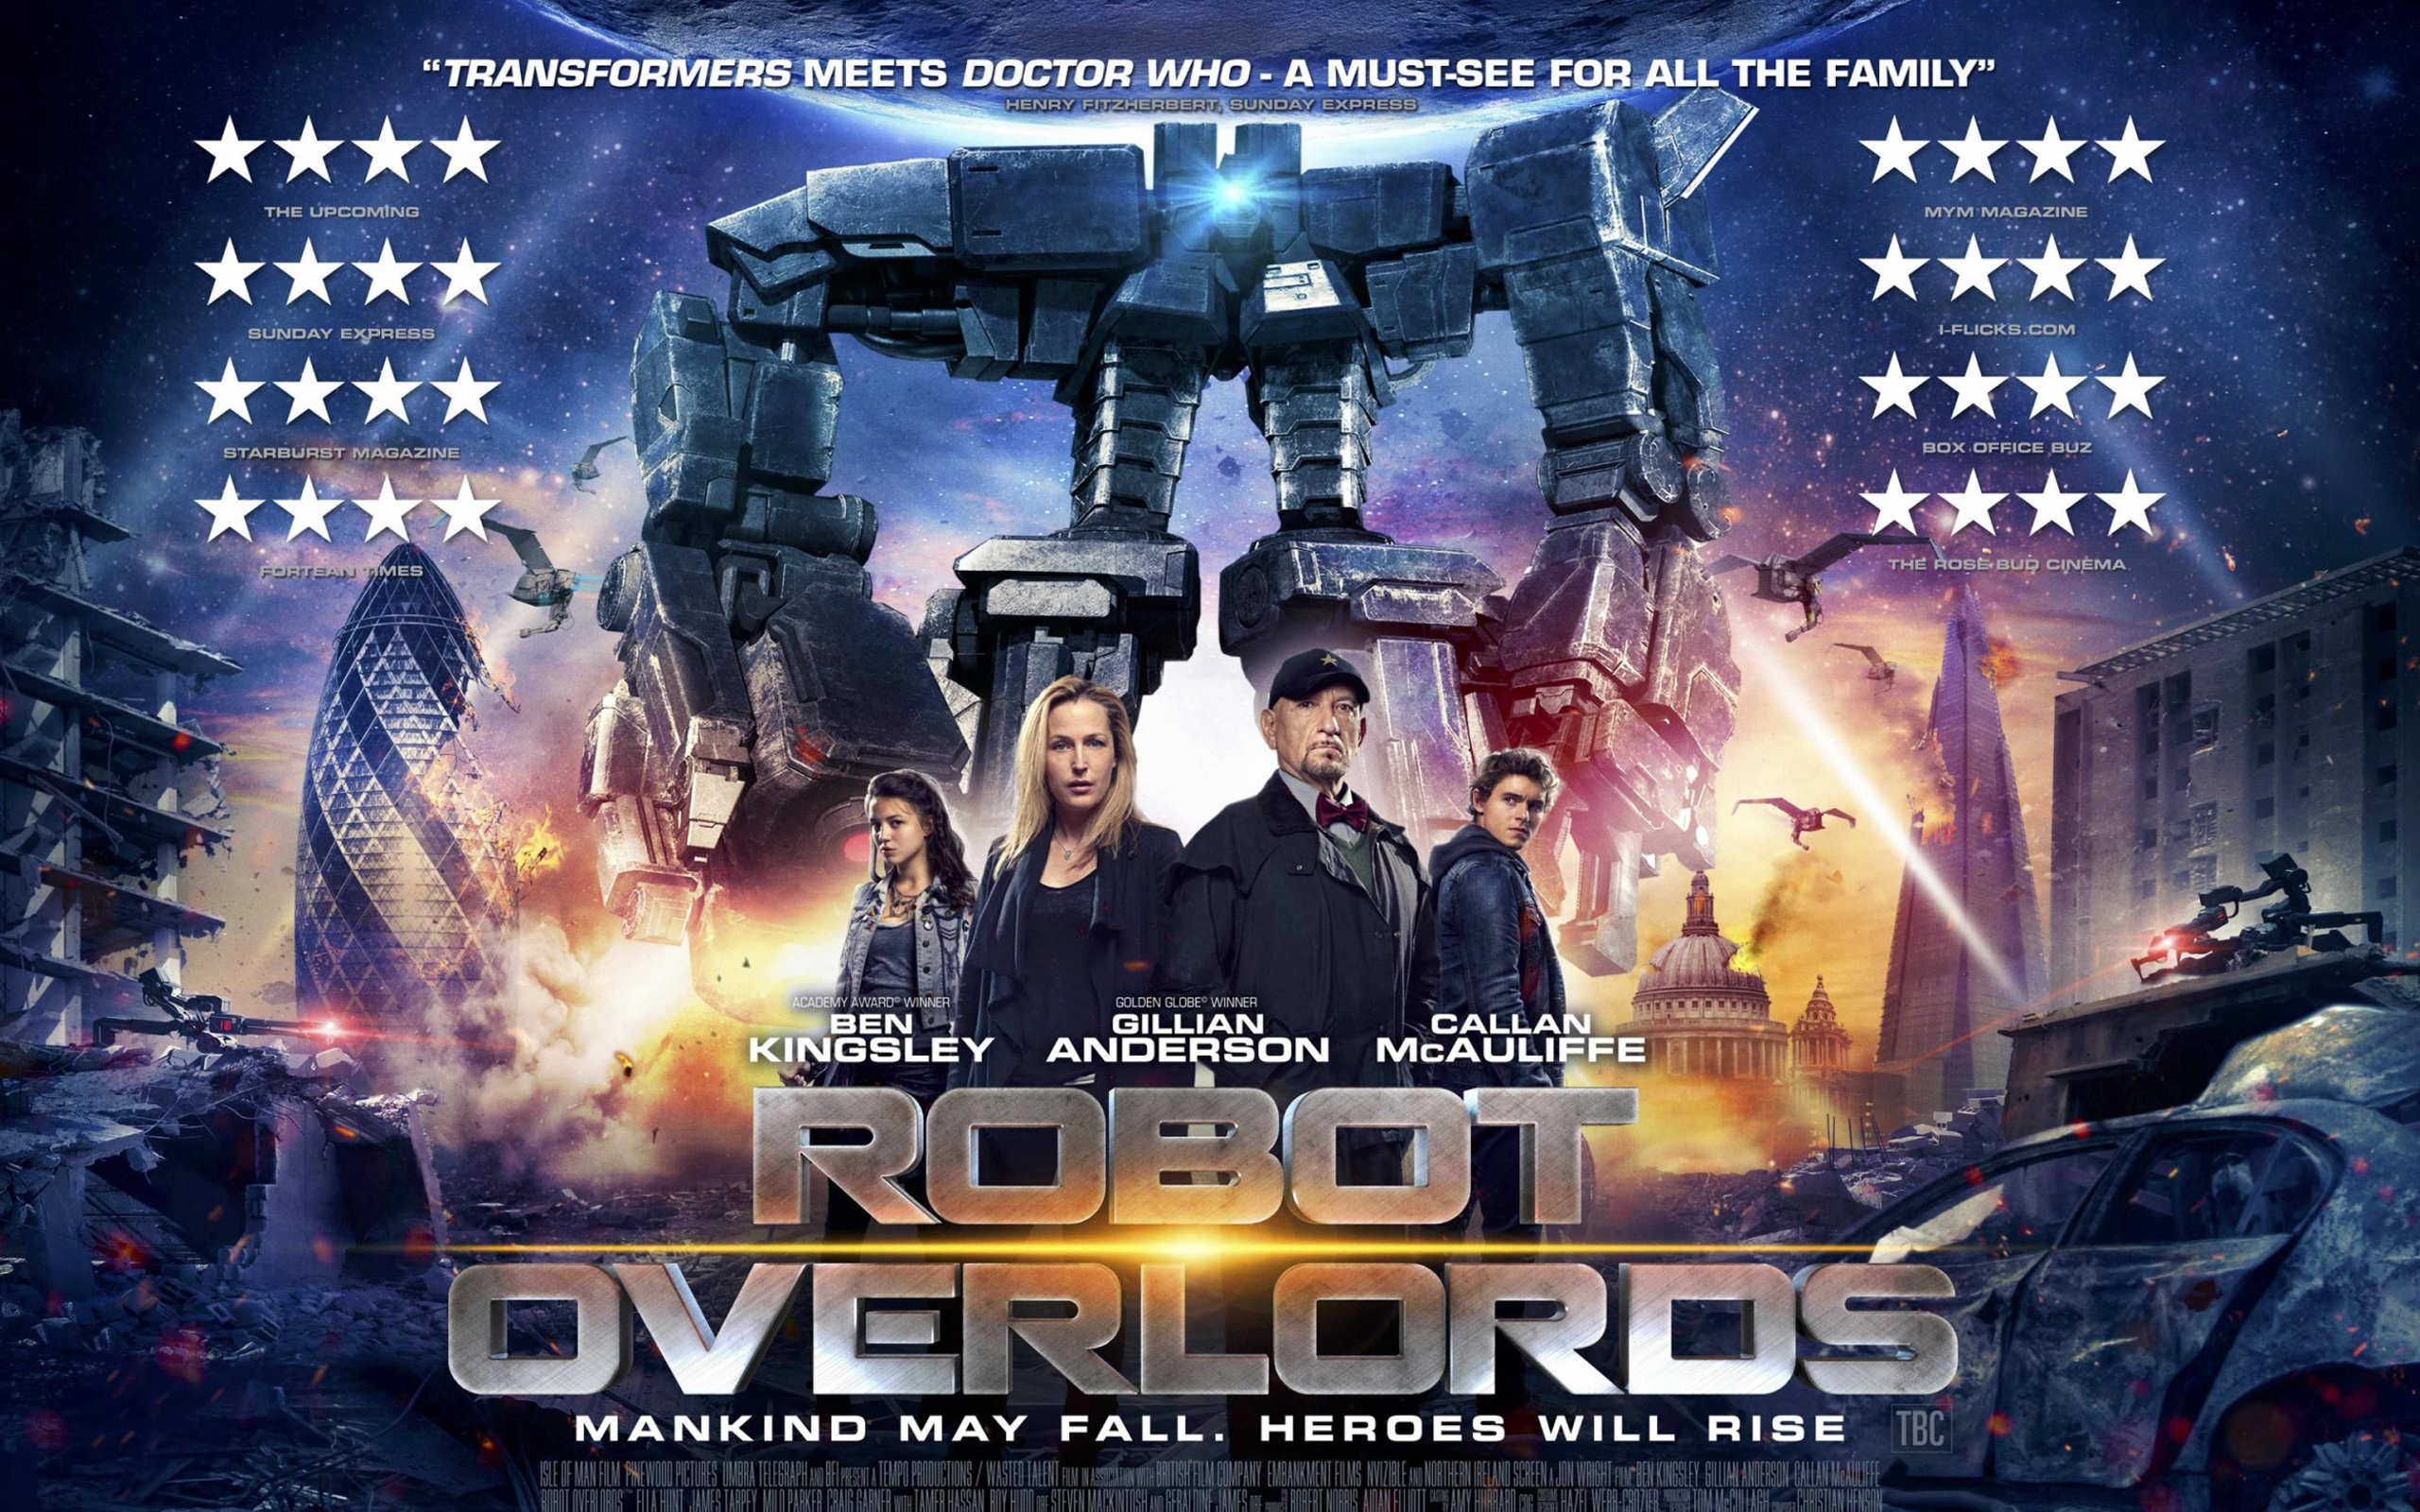 HD Wallpapers 2015 Robot Overlords Movie